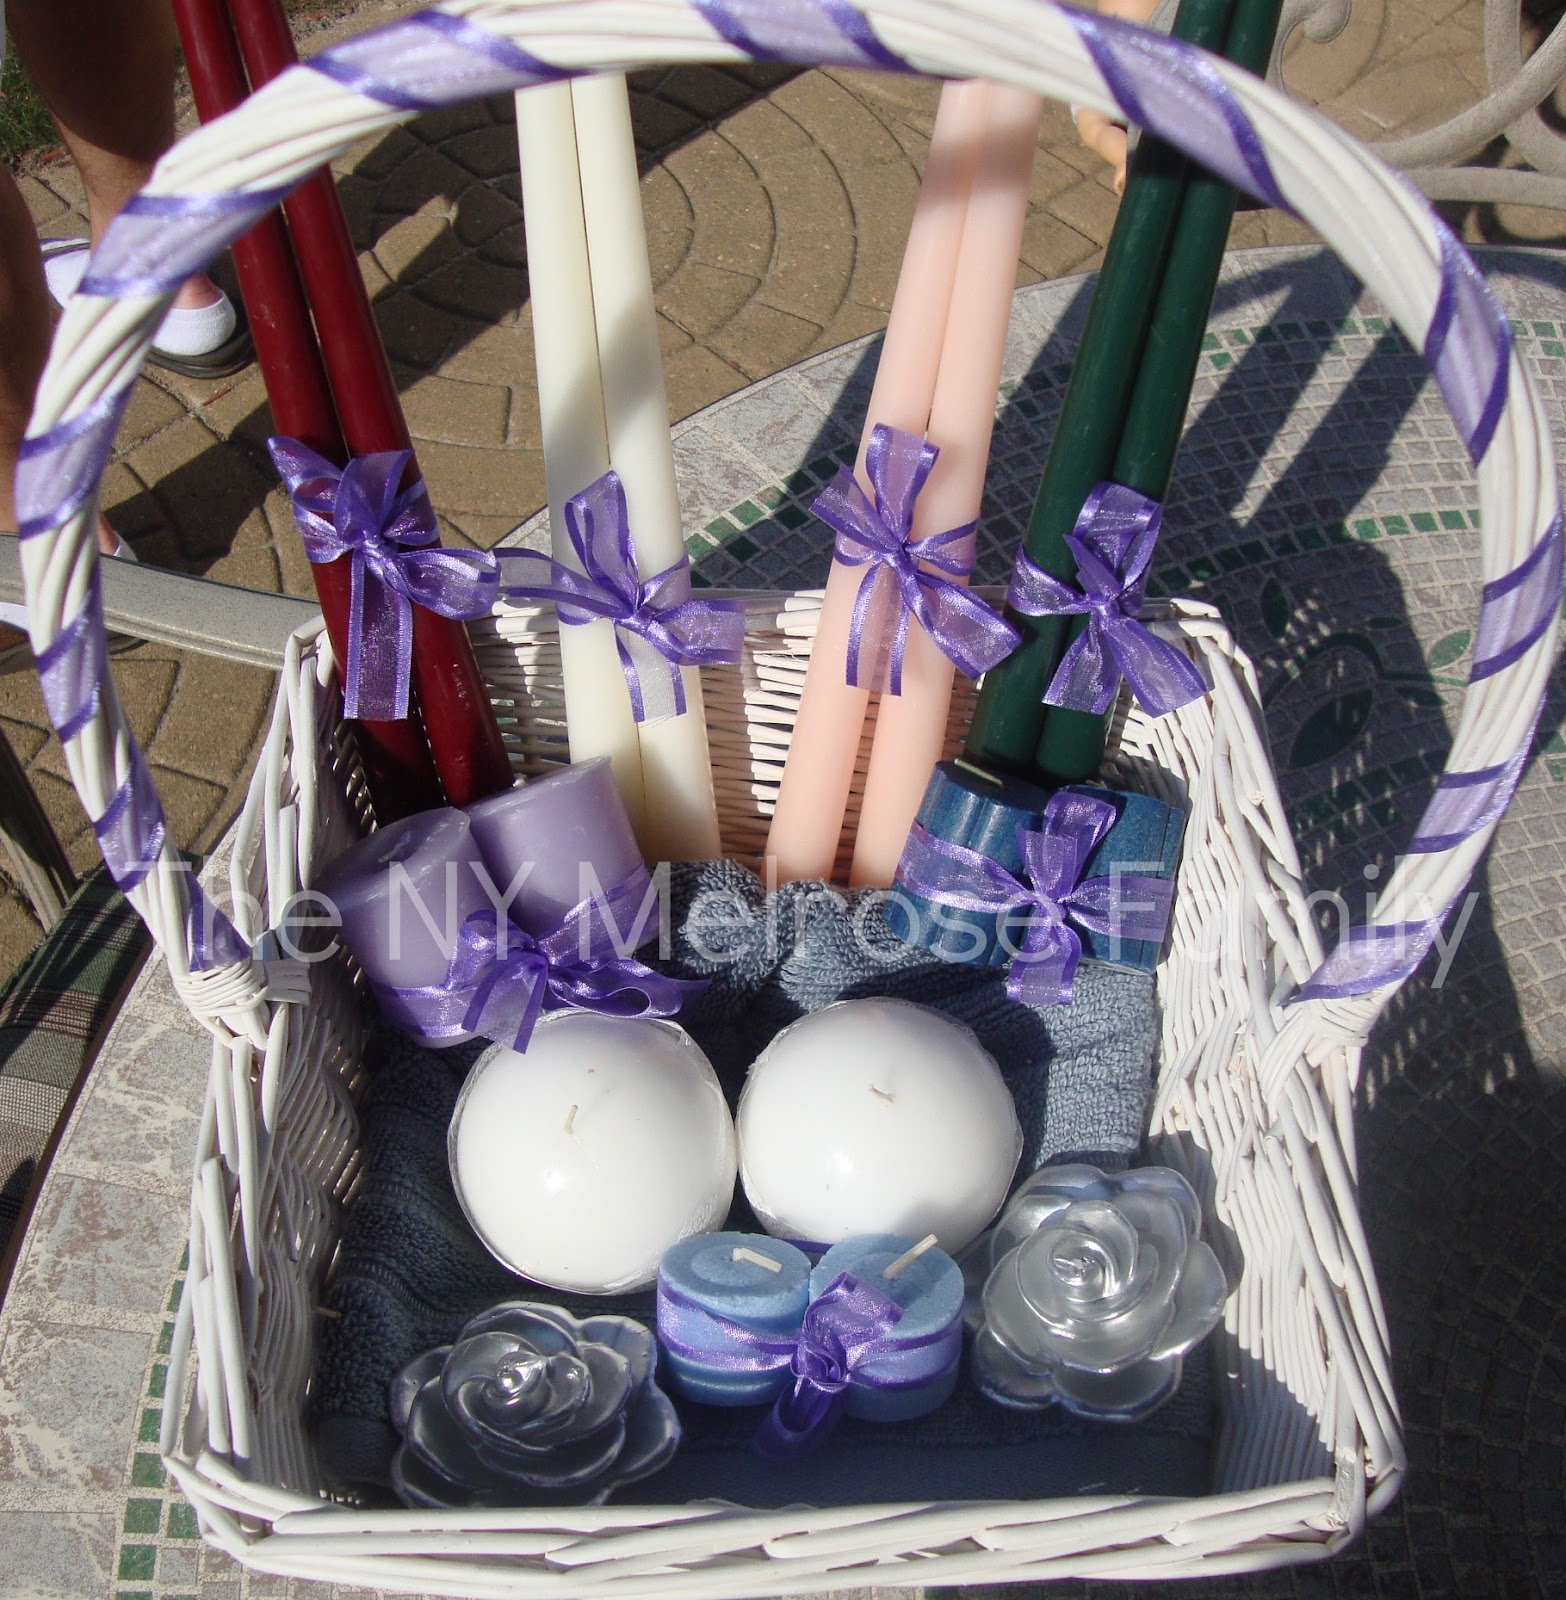 f64c1fbab9c84b I wrapped a purple ribbon around the handle of the basket. I also tied the  pairs of candles with the same purple ribbon.